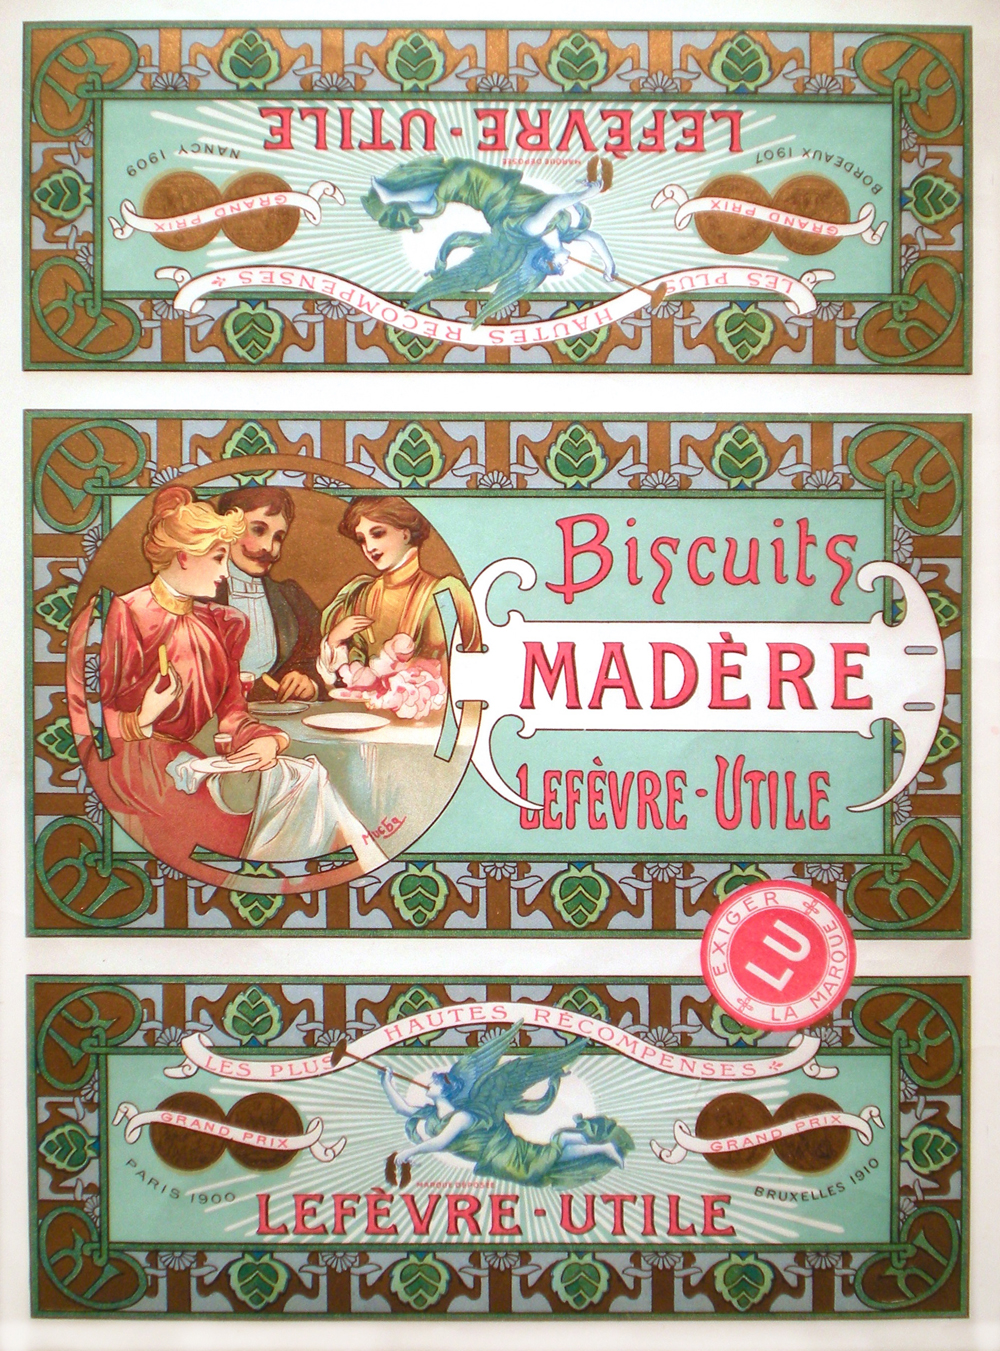 Mucha, Madère Biscuits